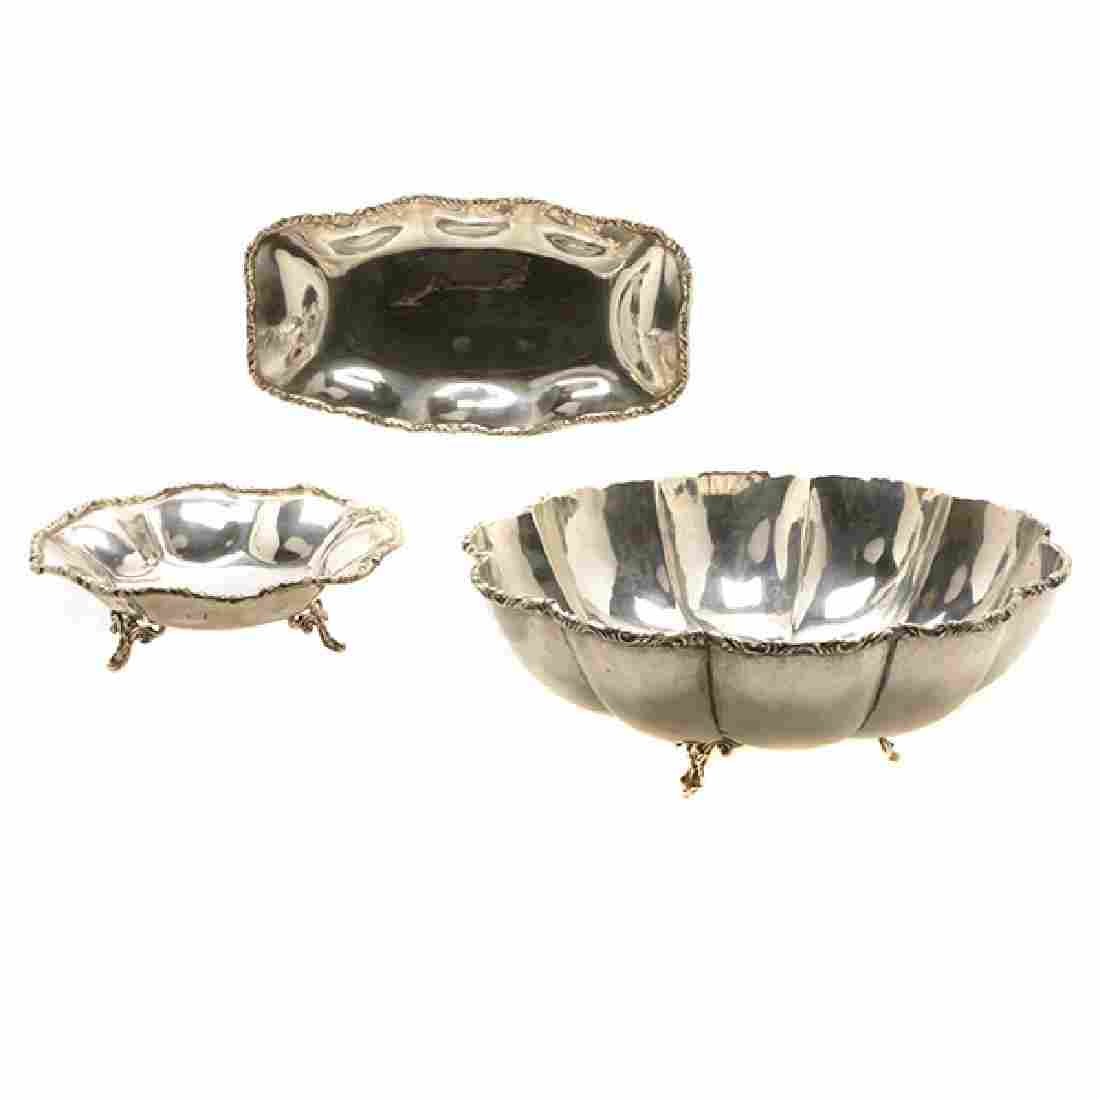 Suite of Three Mexican Sterling Bowls or Plates